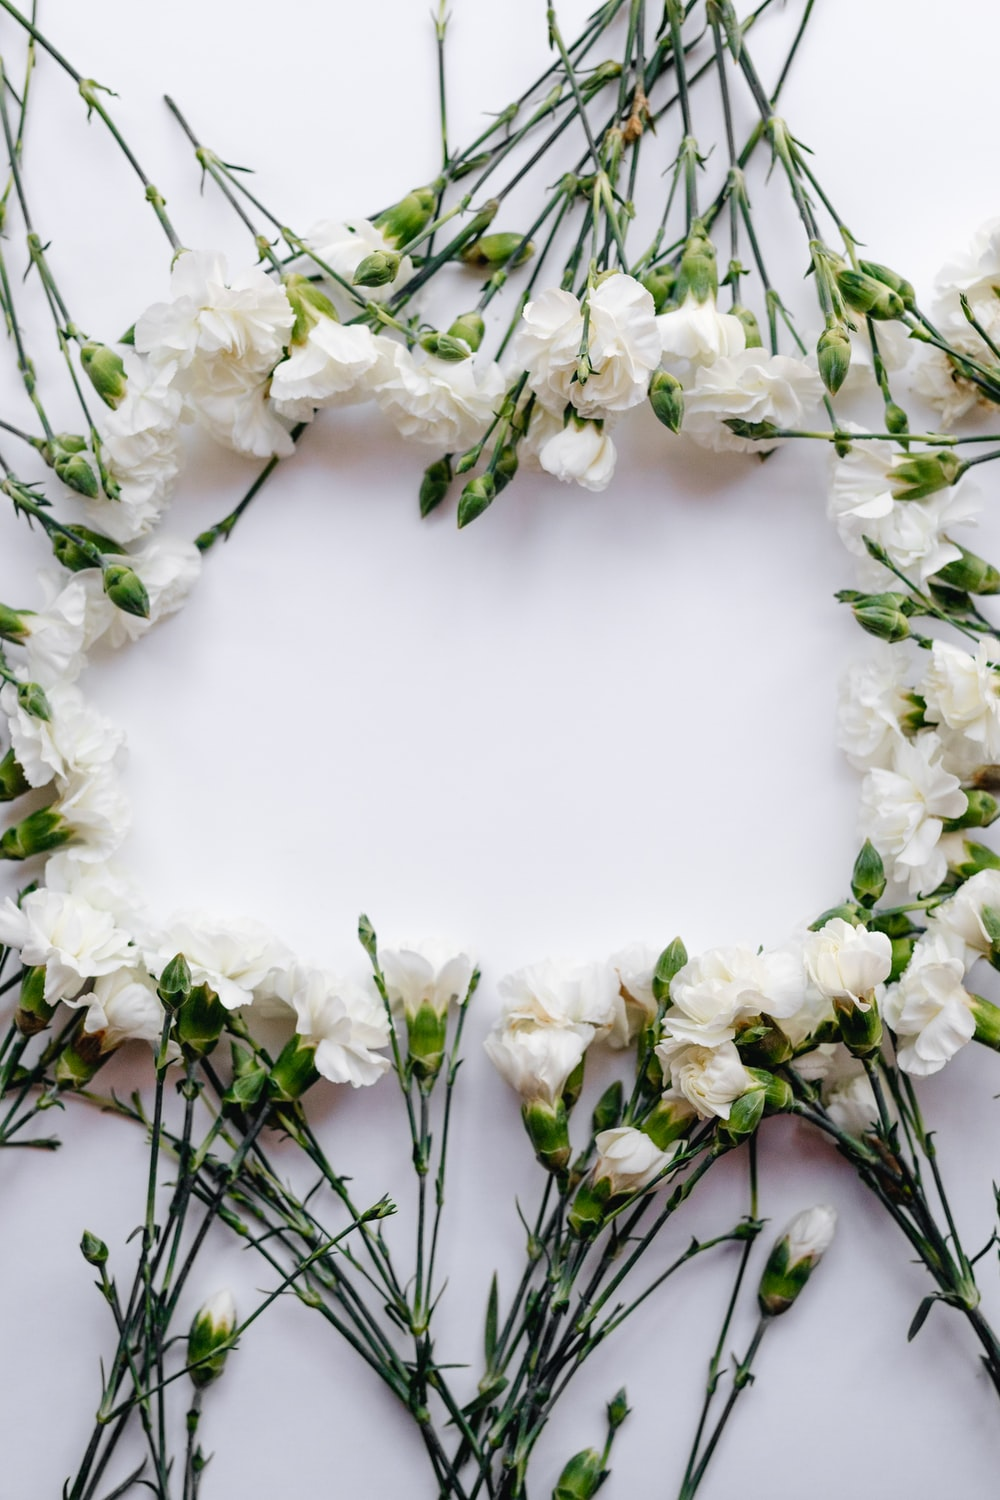 Flower Frame 30 Best Free Frame Flower White And Leaf Photos On